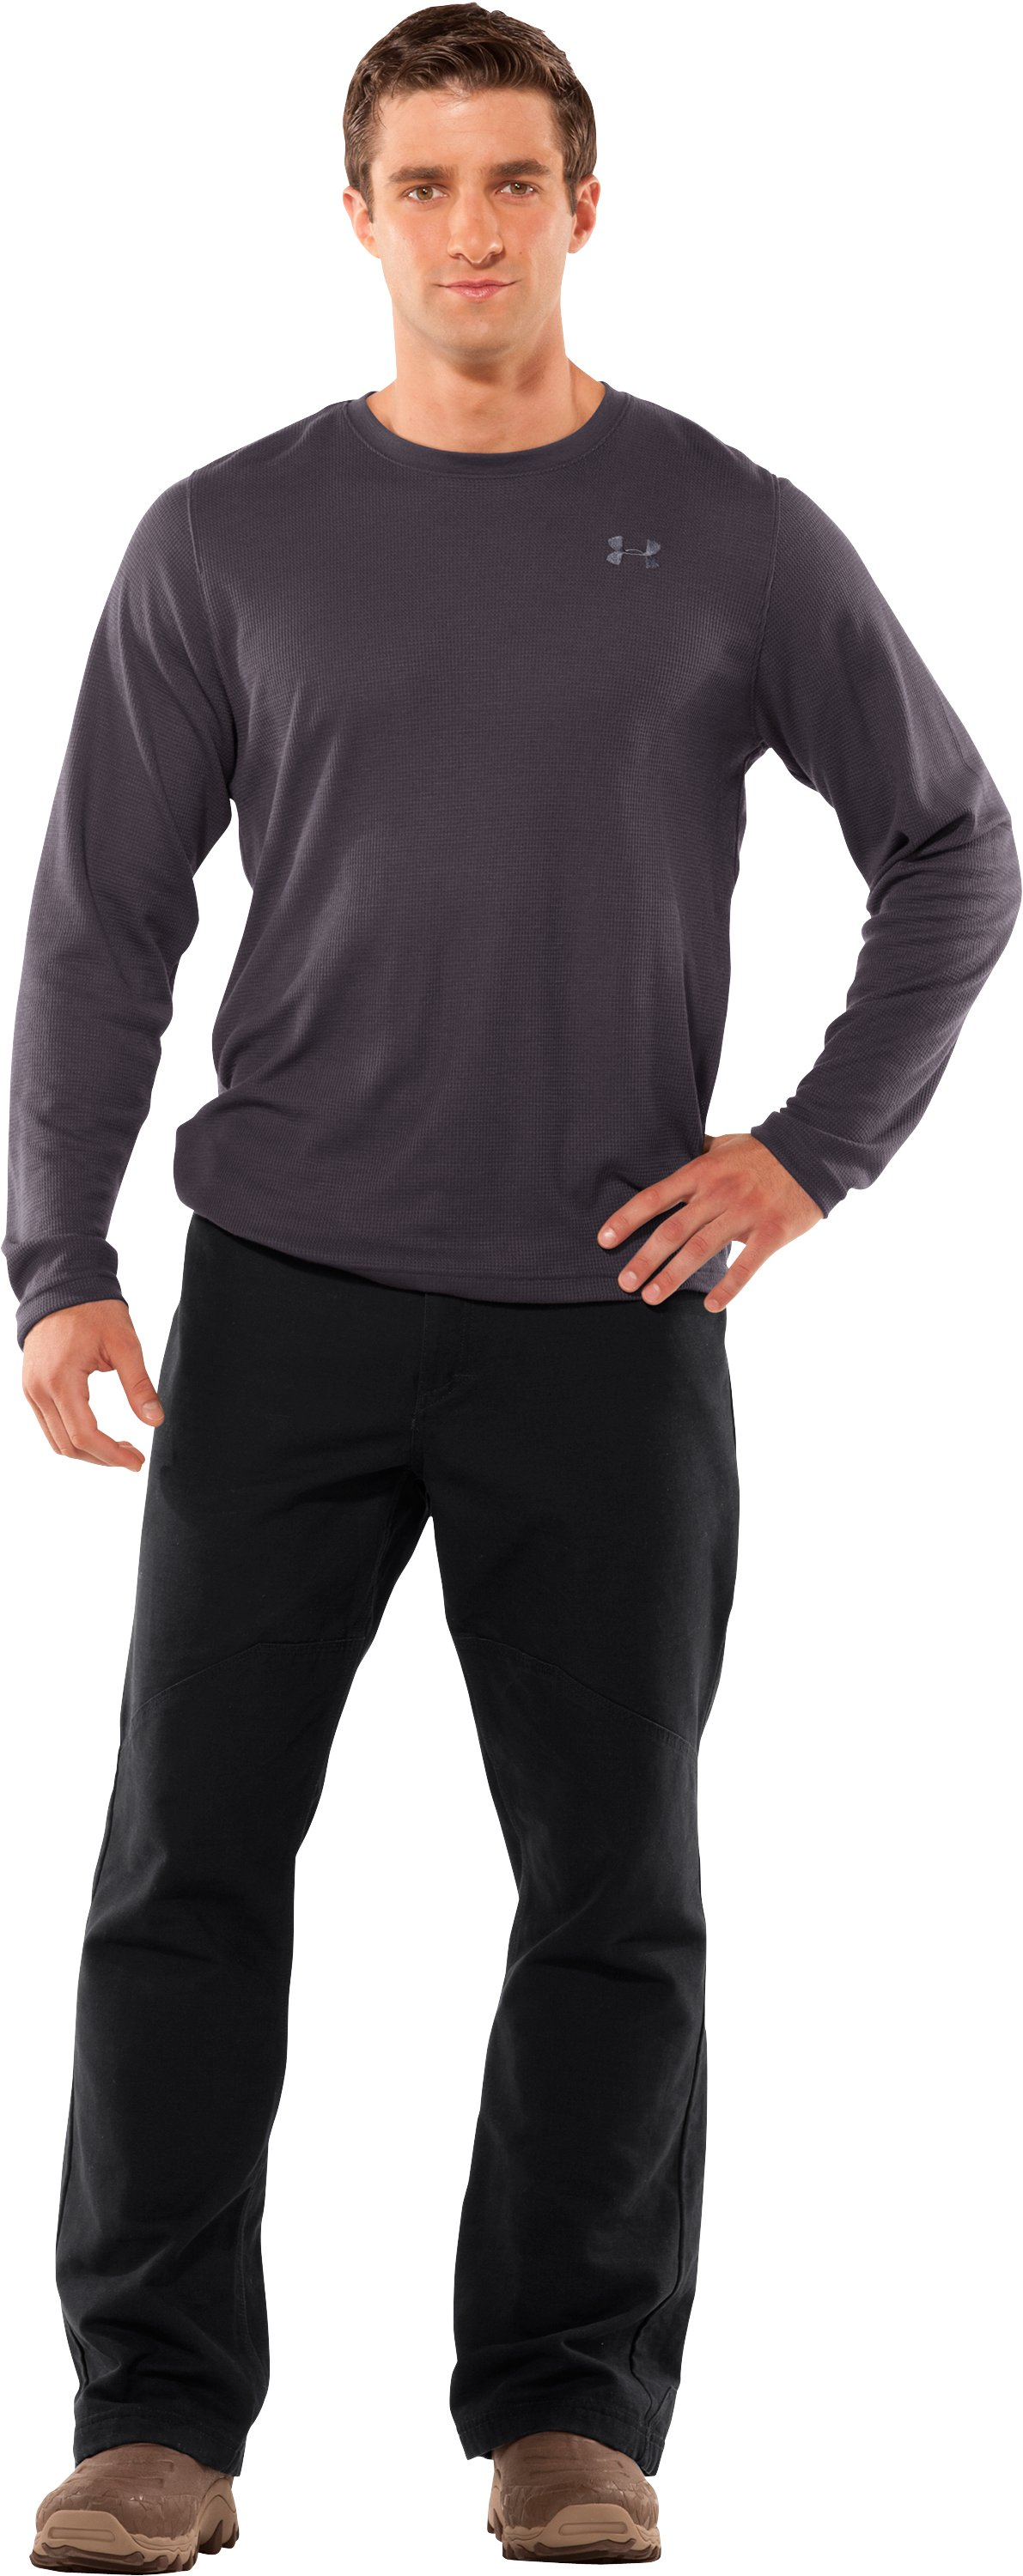 Men's Long Sleeve Waffle Crew, Charcoal, Front